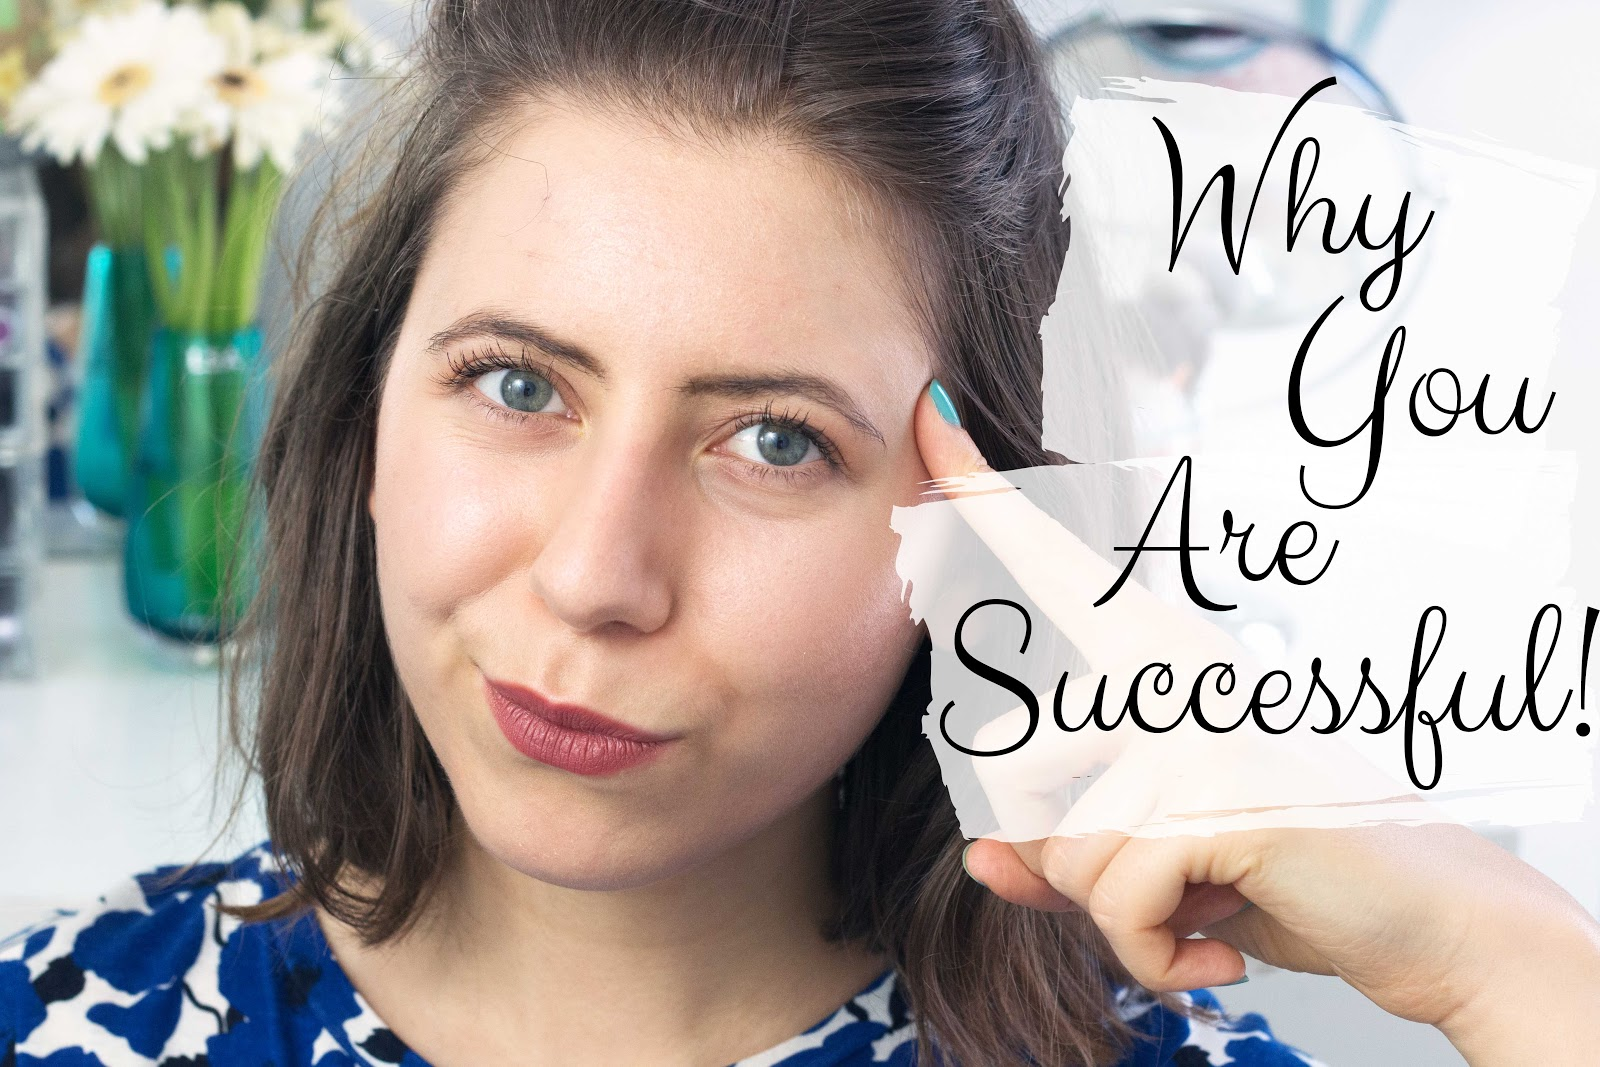 THE VIDEO: WHY YOU ARE SUCCESSFUL